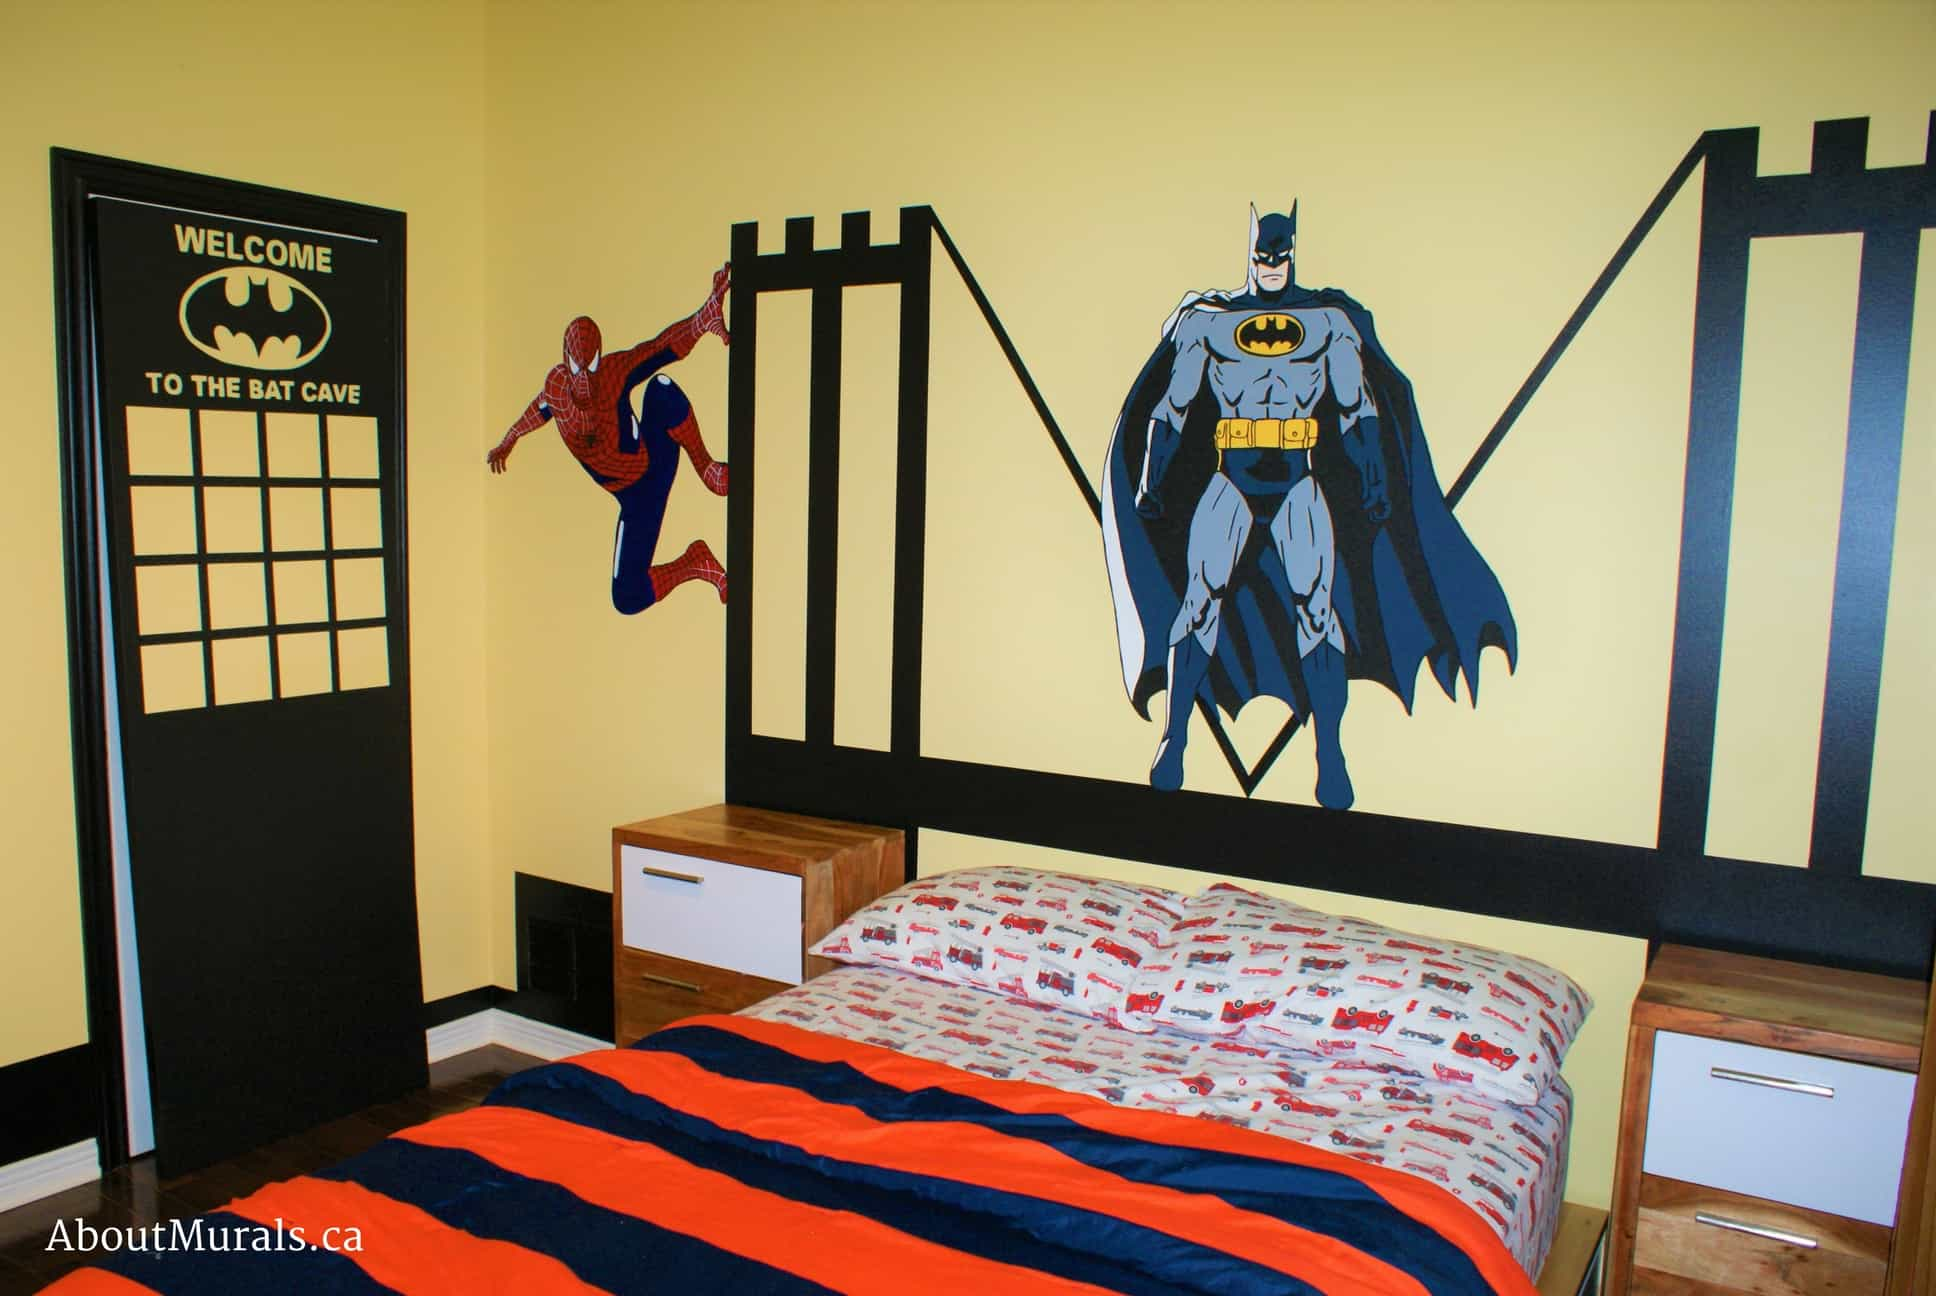 A kids wall mural featuring the superheros Batman and Spiderman